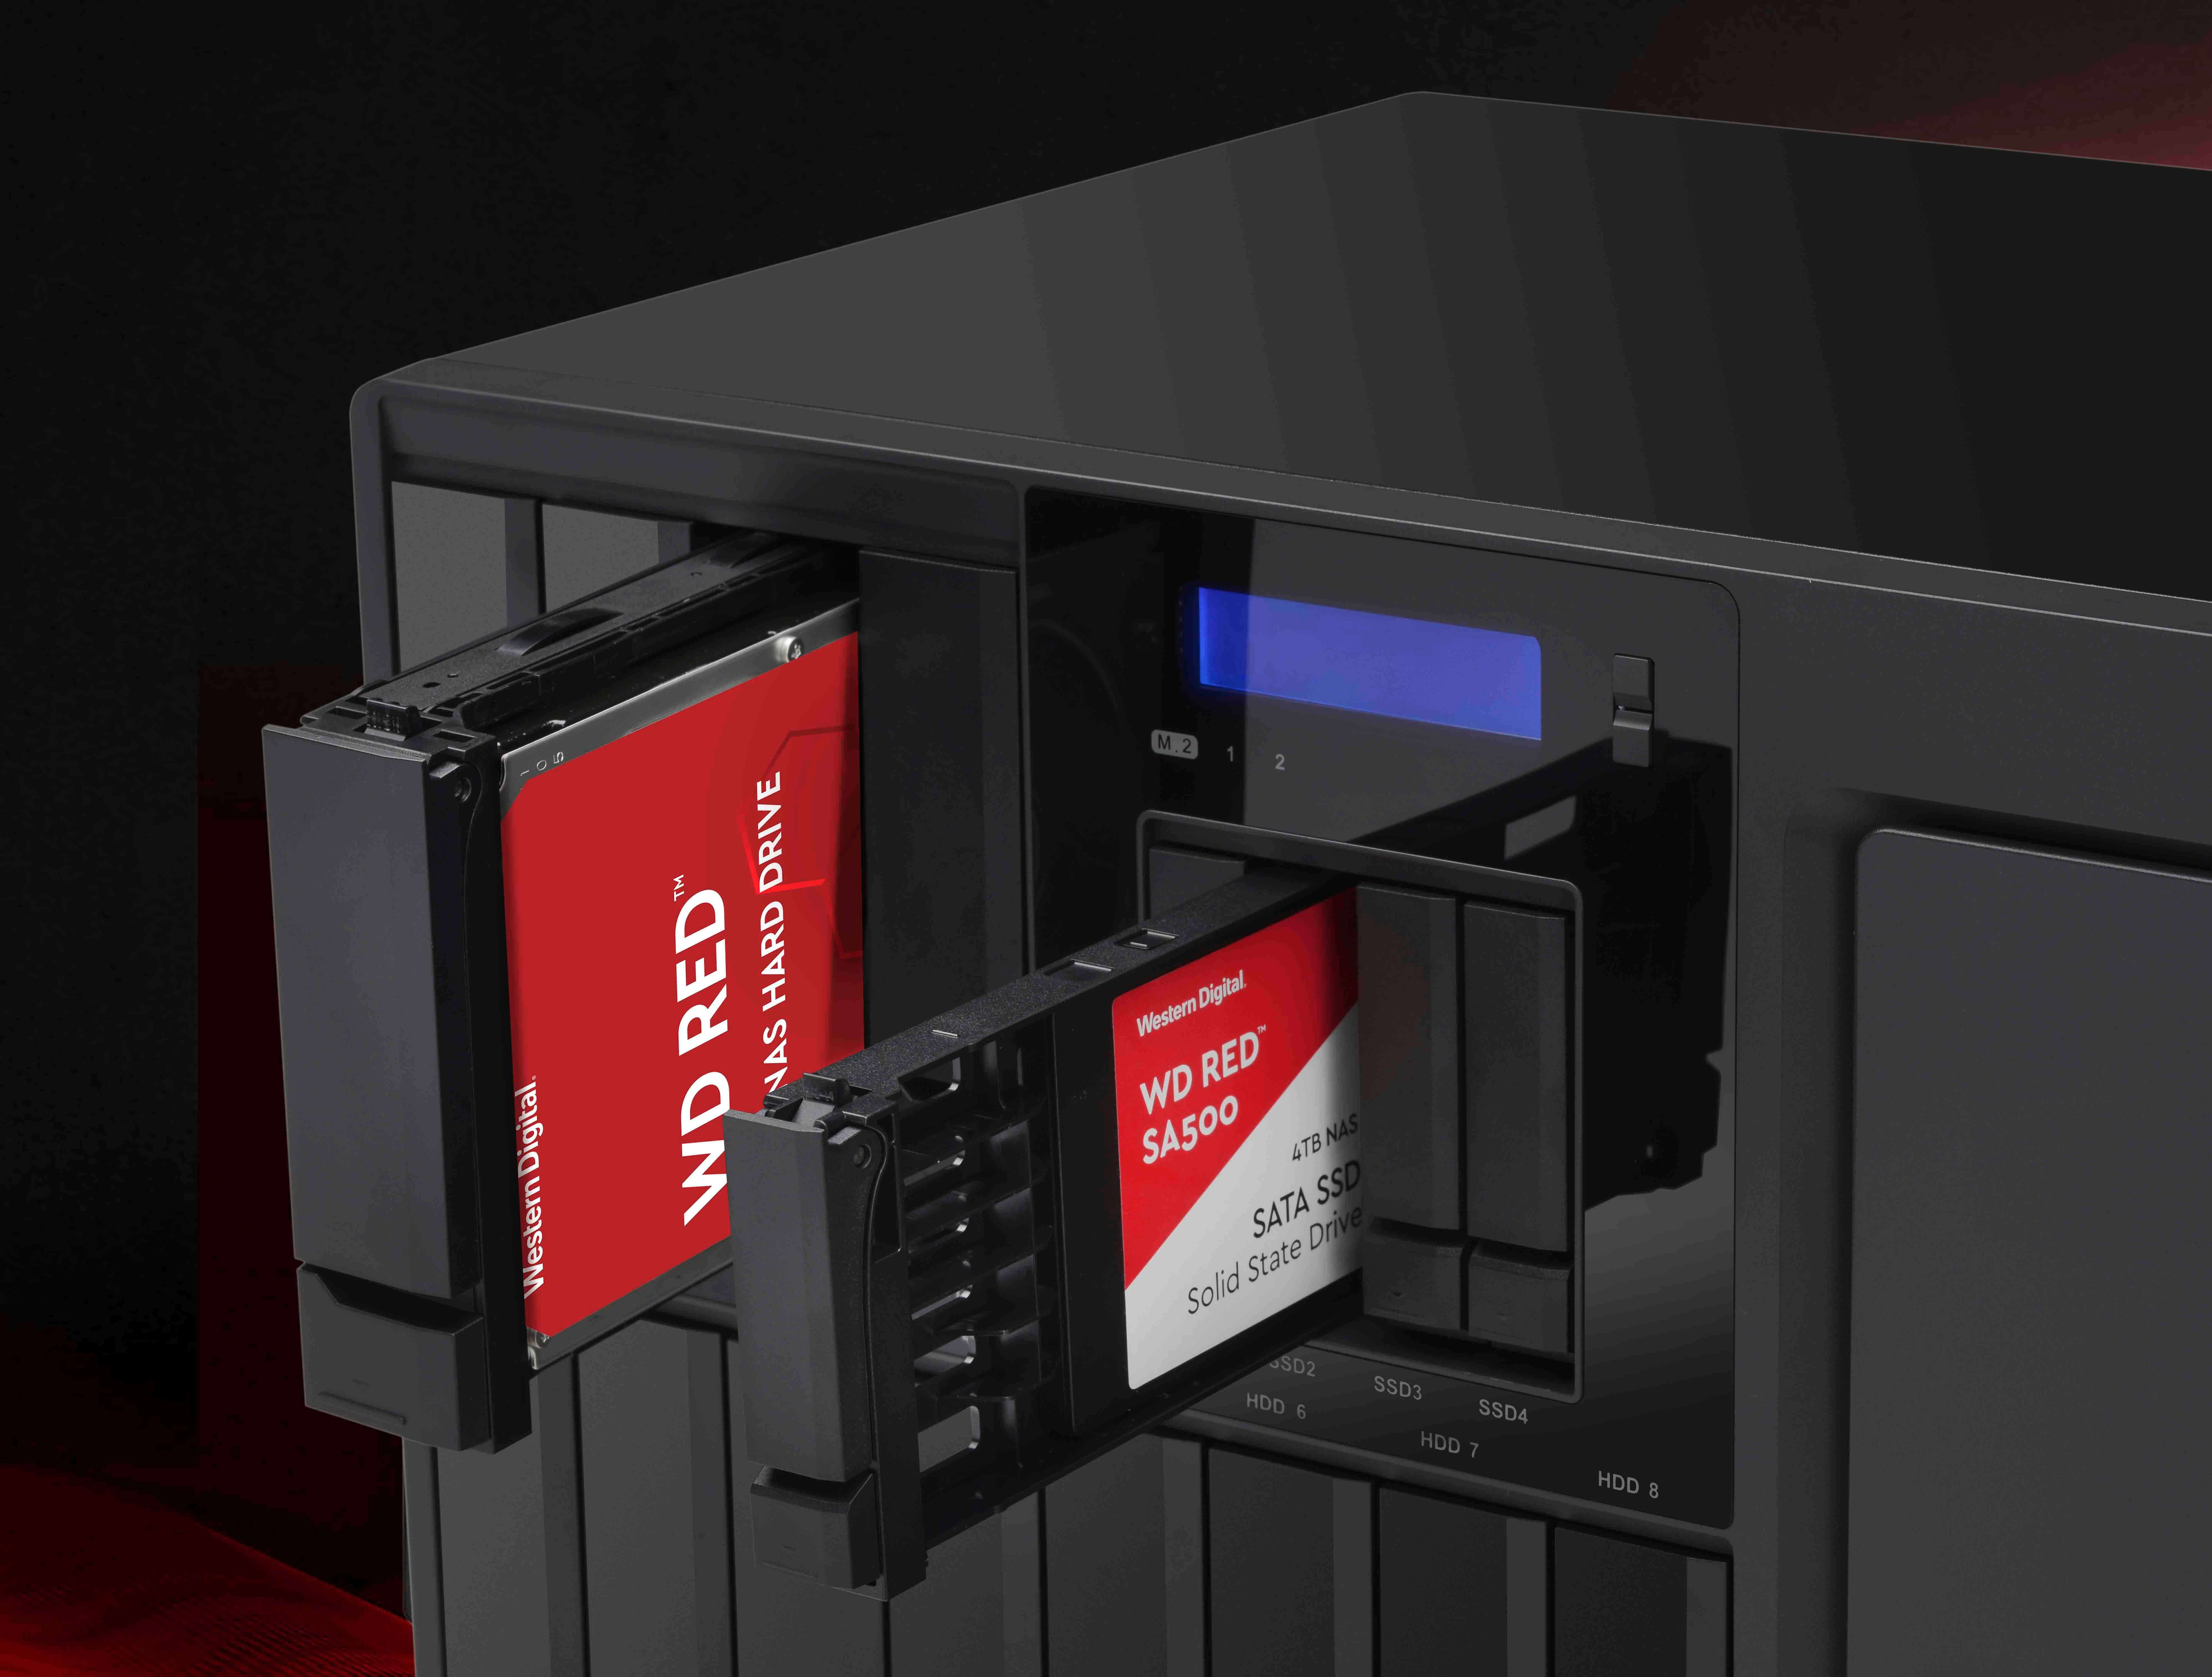 WD Red HDD SSD NAS